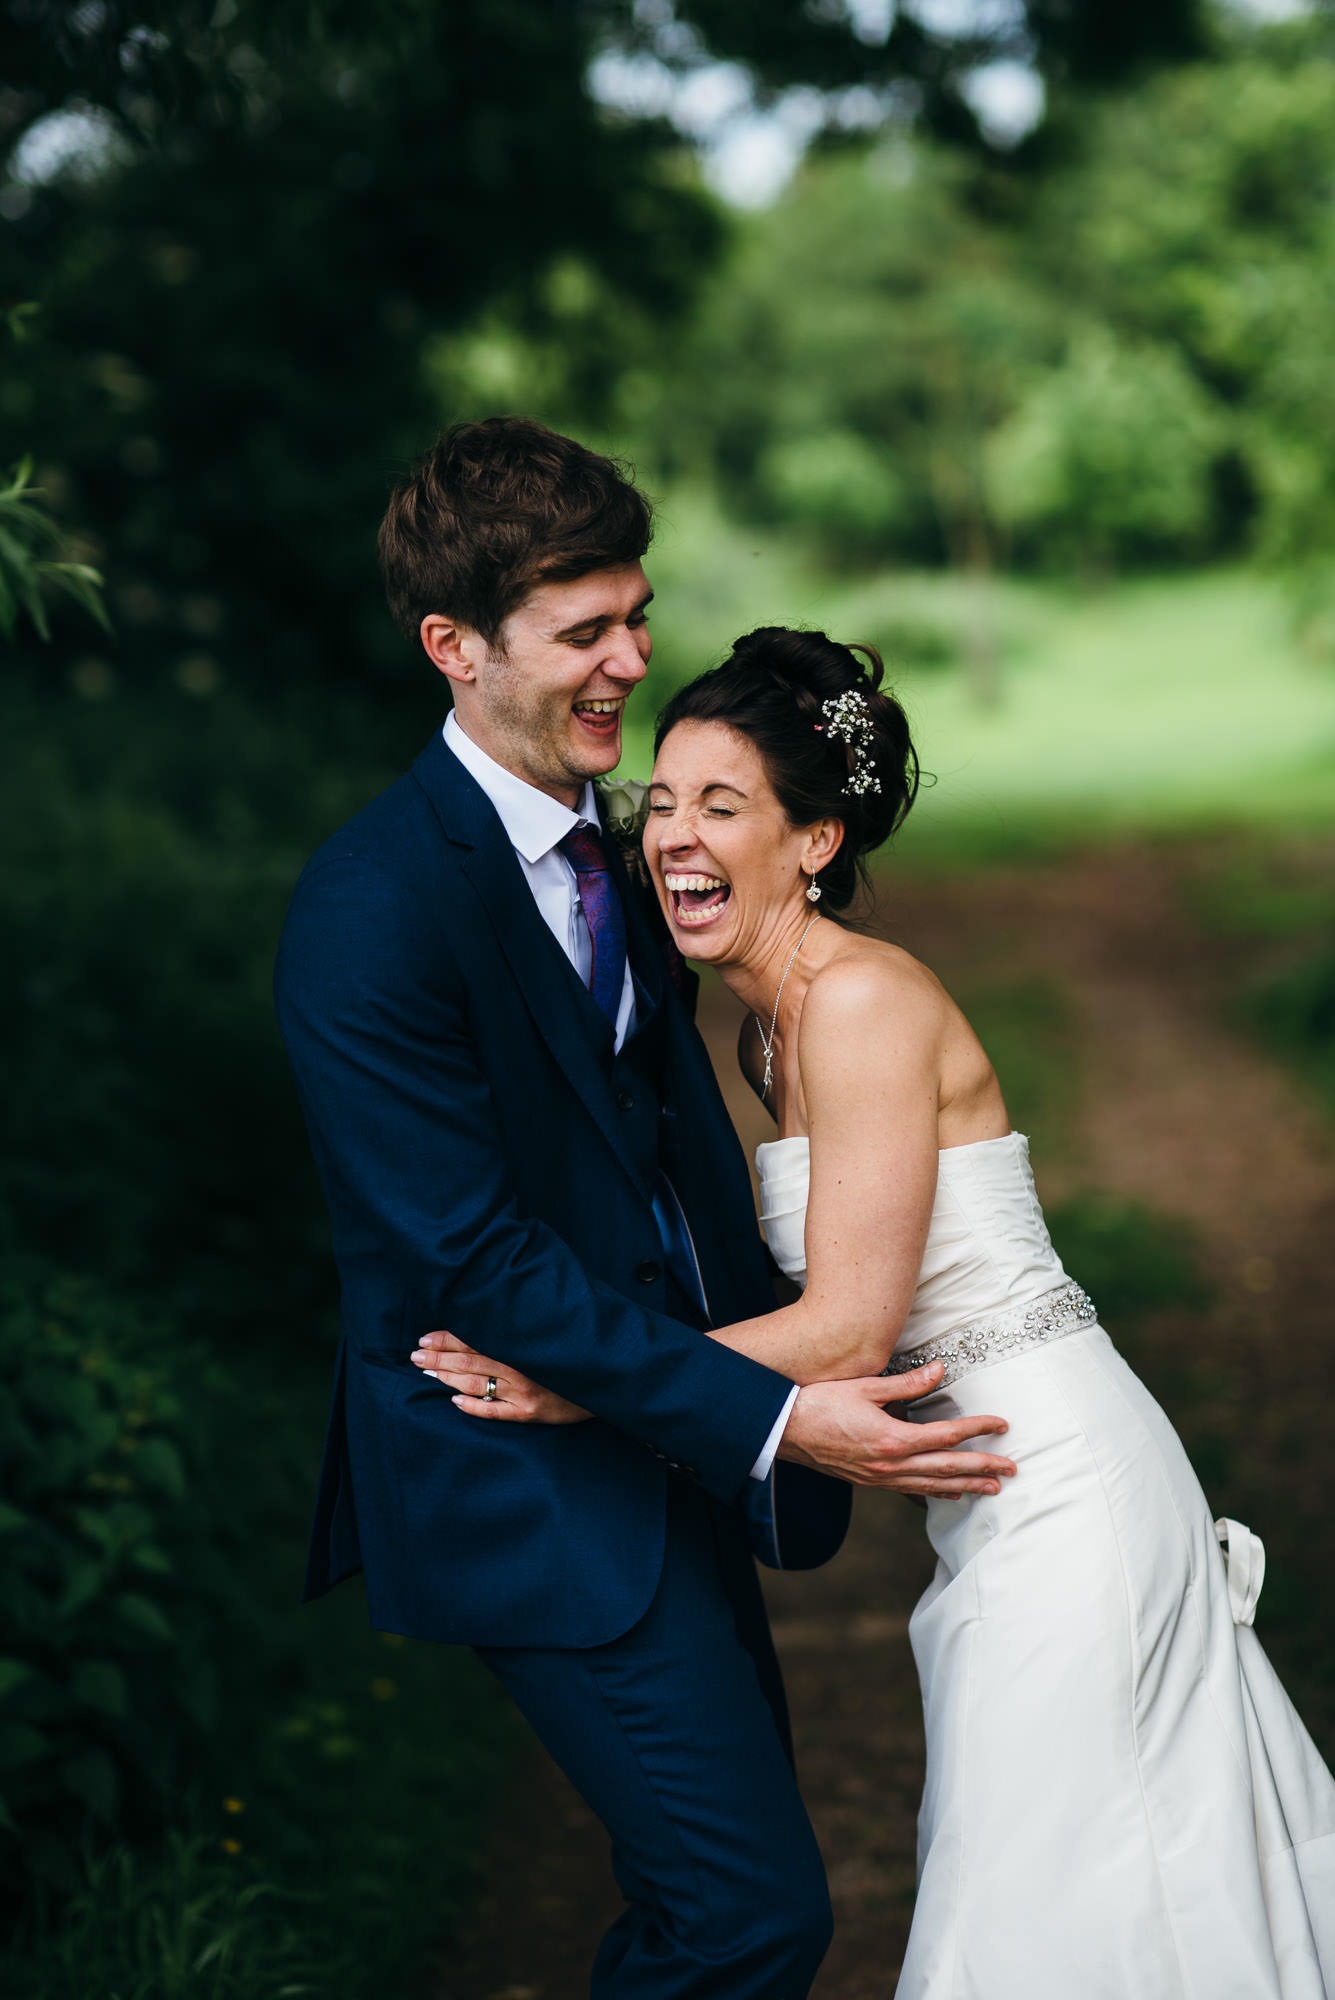 Laughing at Huntstile organic farm wedding